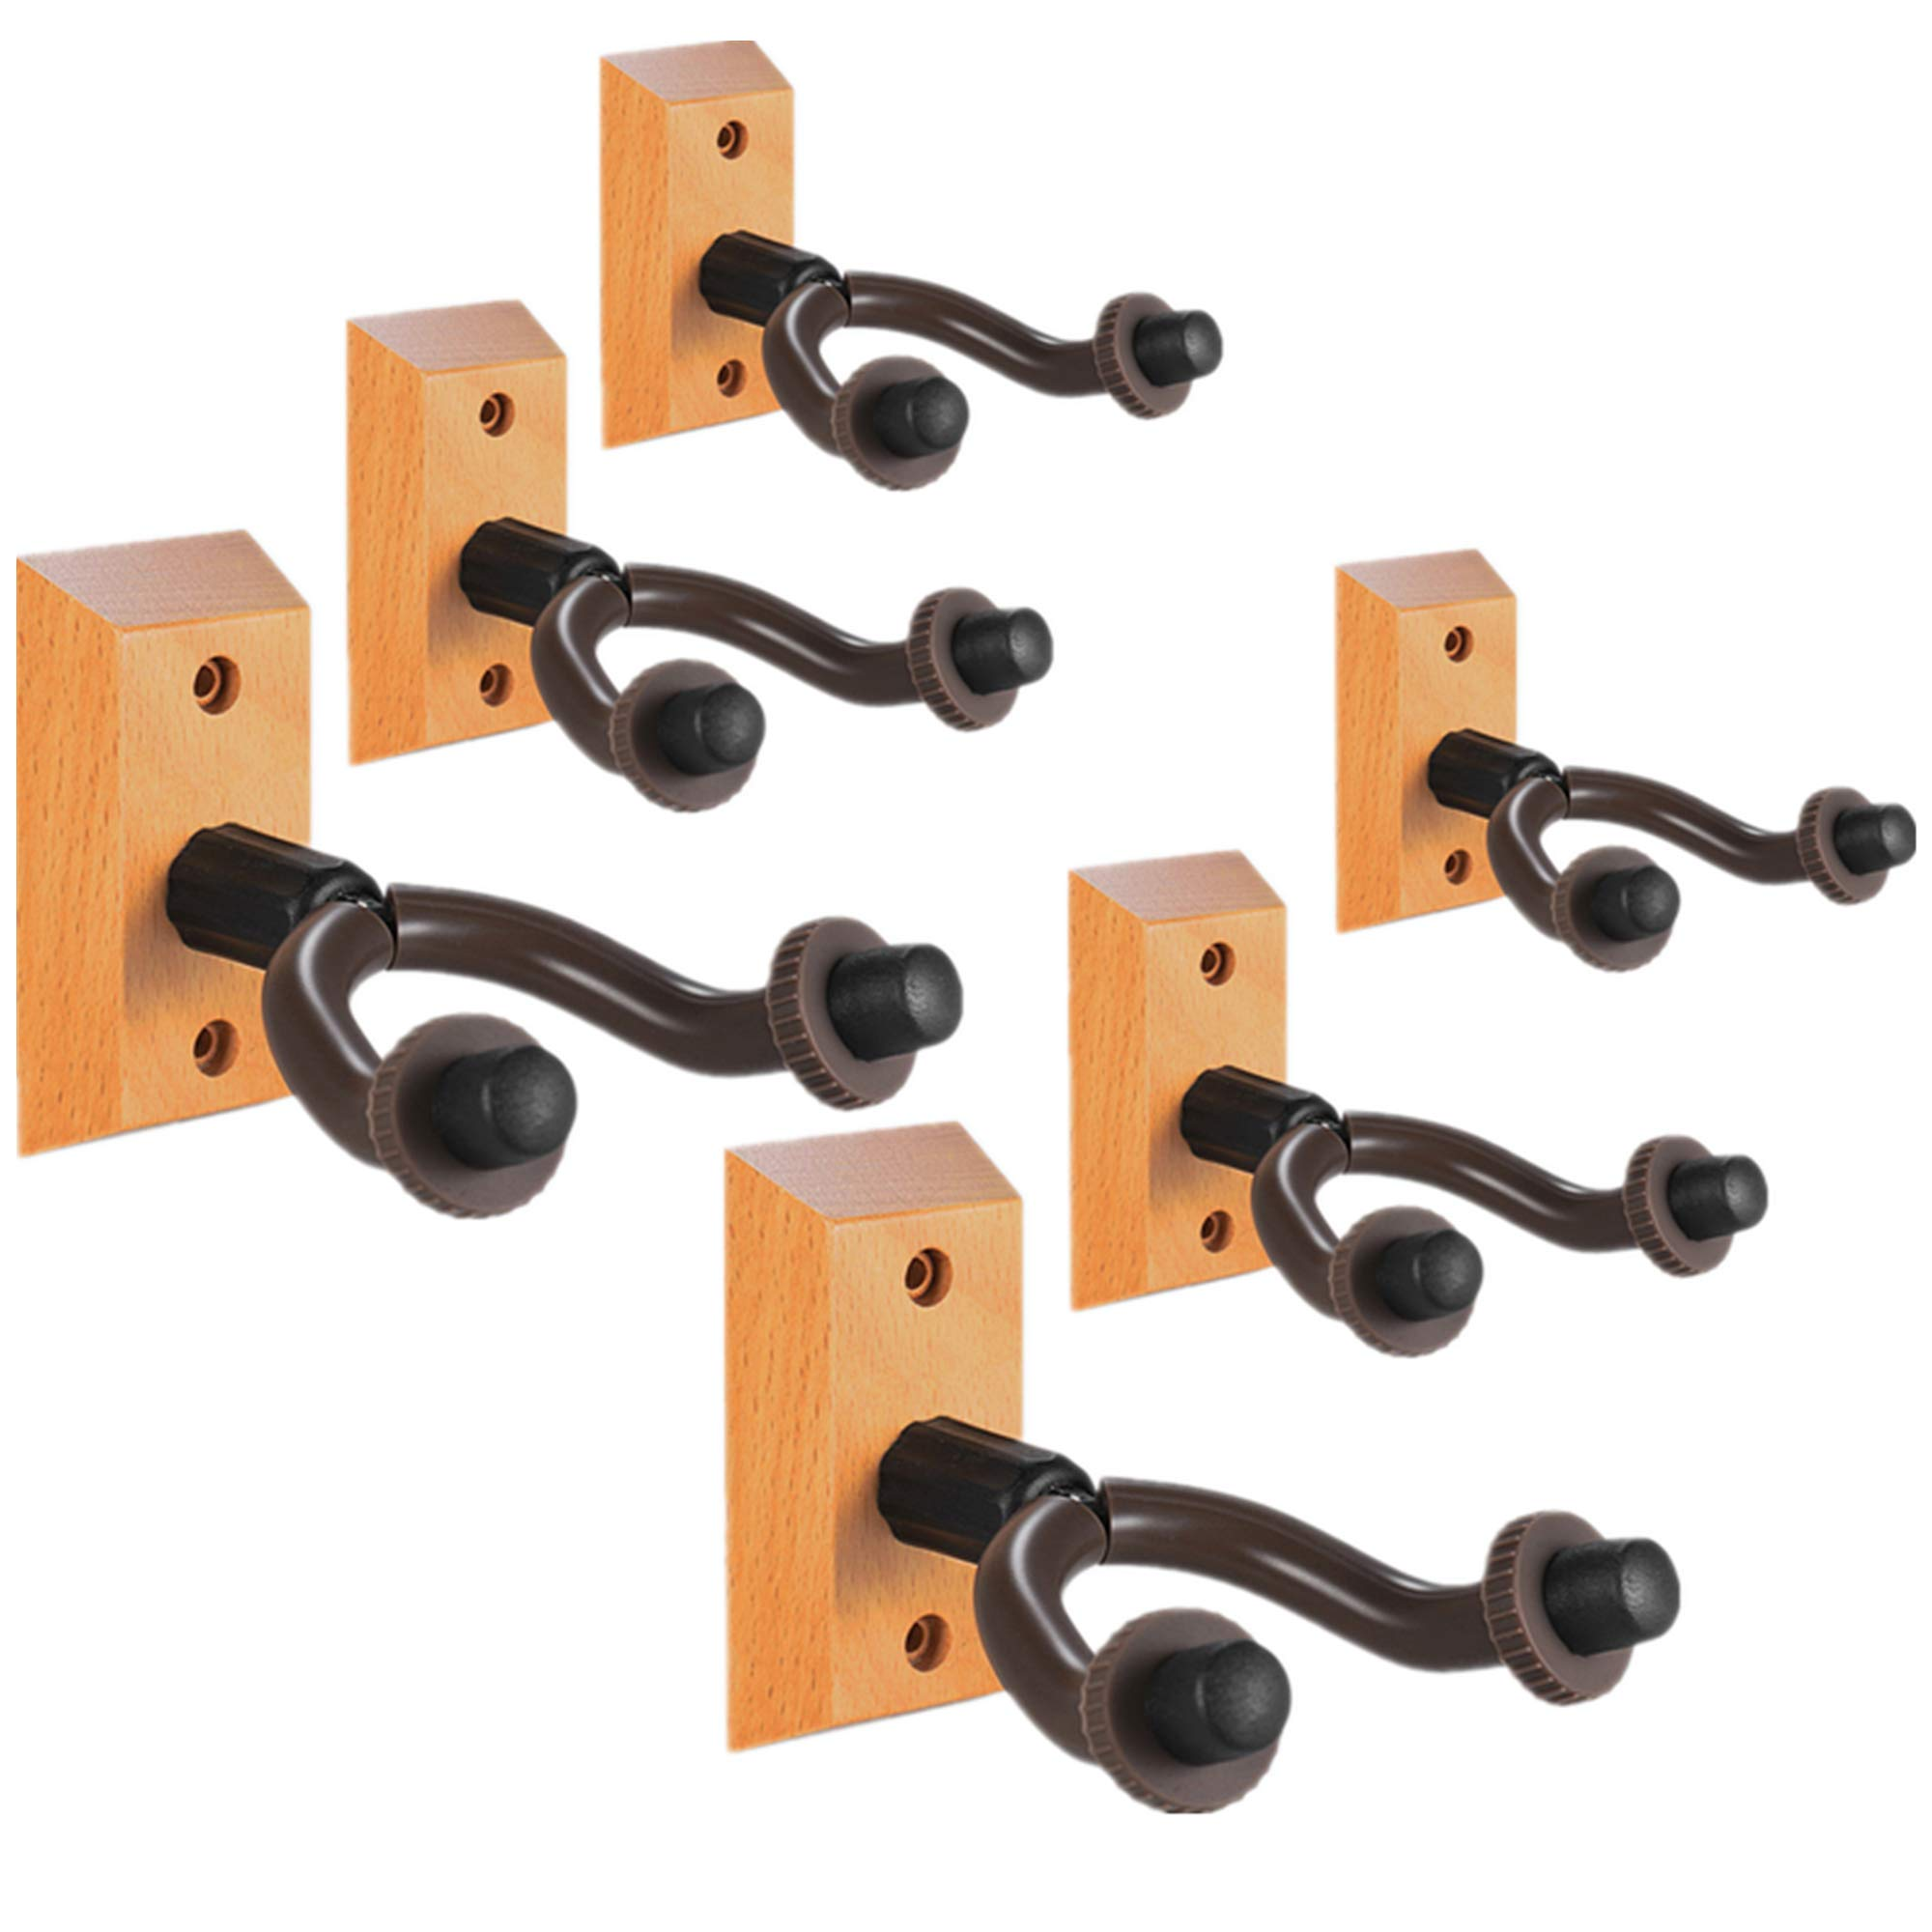 Guitar Wall Mount Hanger 6 Pack, Hardwood Guitar Hanger Wall Hook Holder Stand Display with Screws - Easy To Install - Fits All Size Guitars, Bass, Mandolin, Banjo, Ukulele